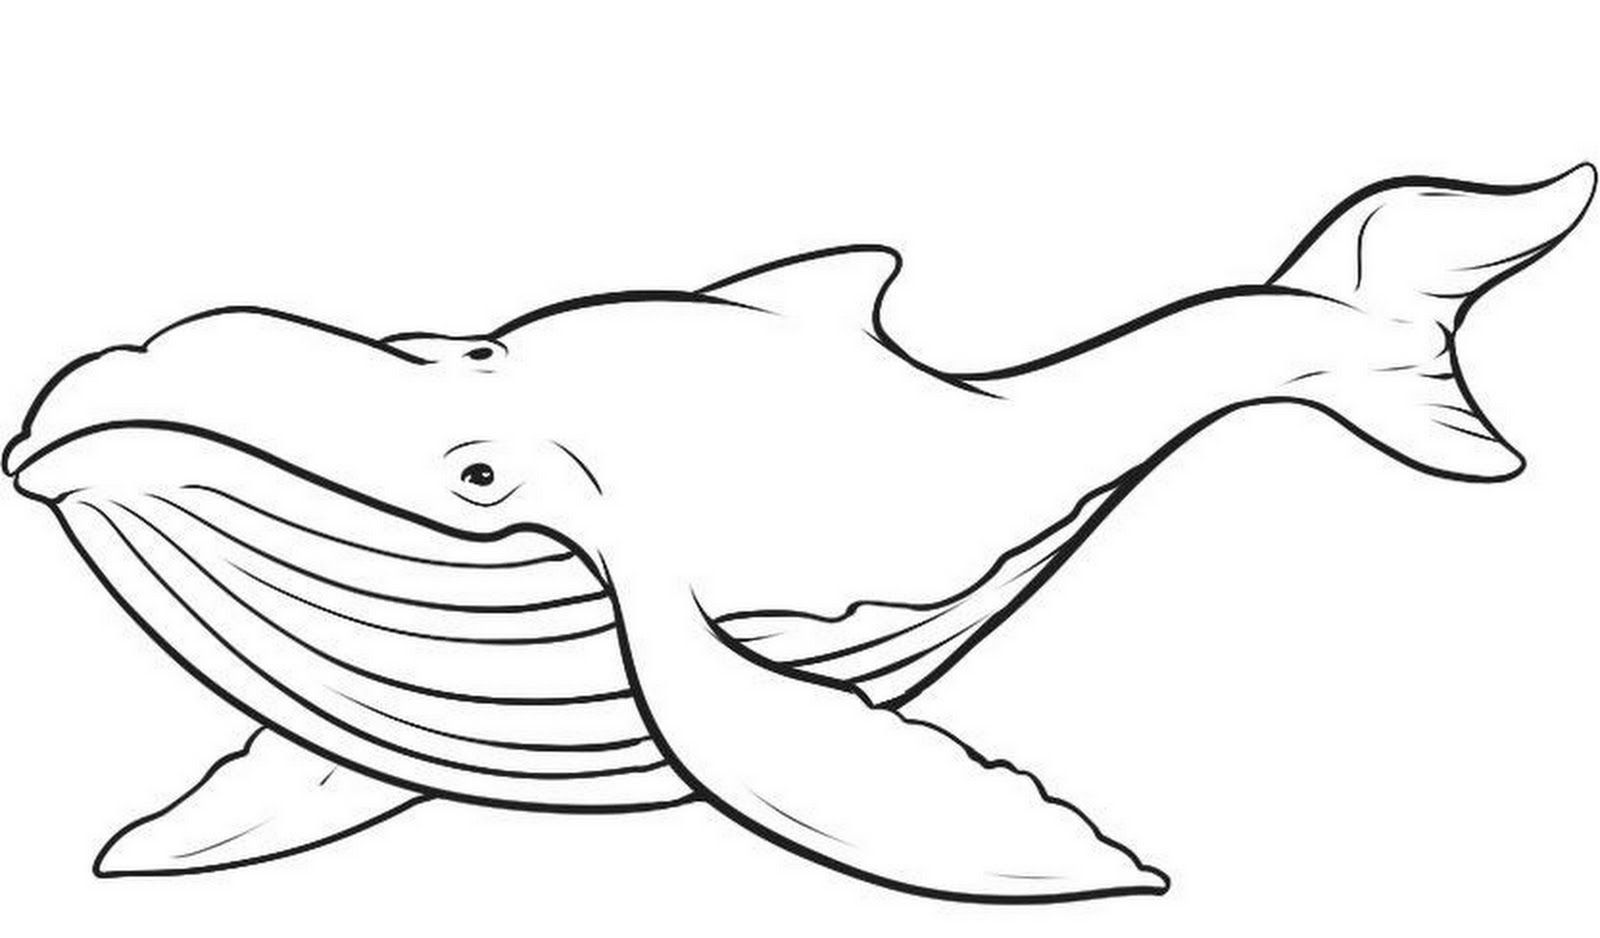 Humpback Whale Coloring Pages Humpback Whale Coloring Page Coloring Pages Pictures Imag Animal Coloring Pages Whale Coloring Pages Shark Coloring Pages